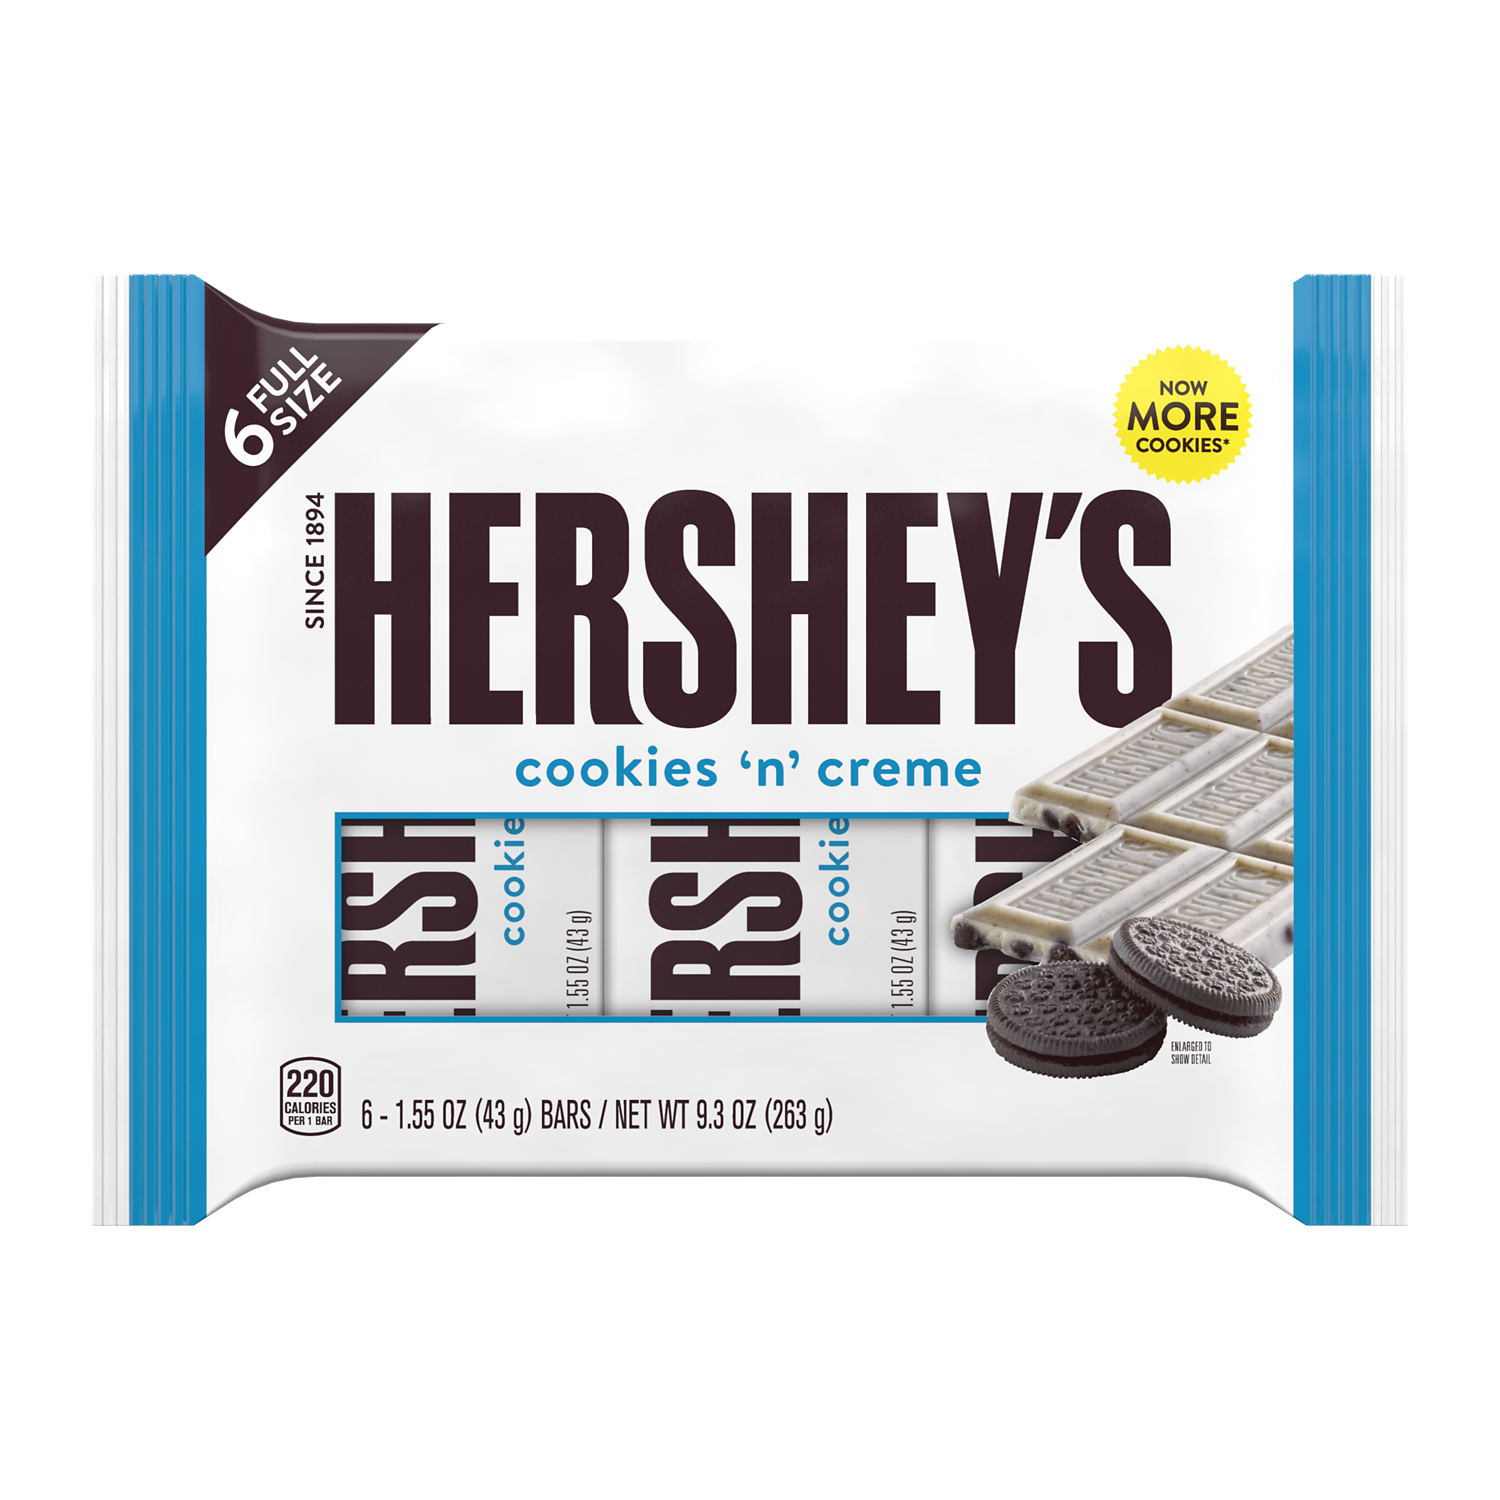 HERSHEY'S COOKIES 'N' CREME Candy Bars, 9.3 oz, 6 pack - Front of Package